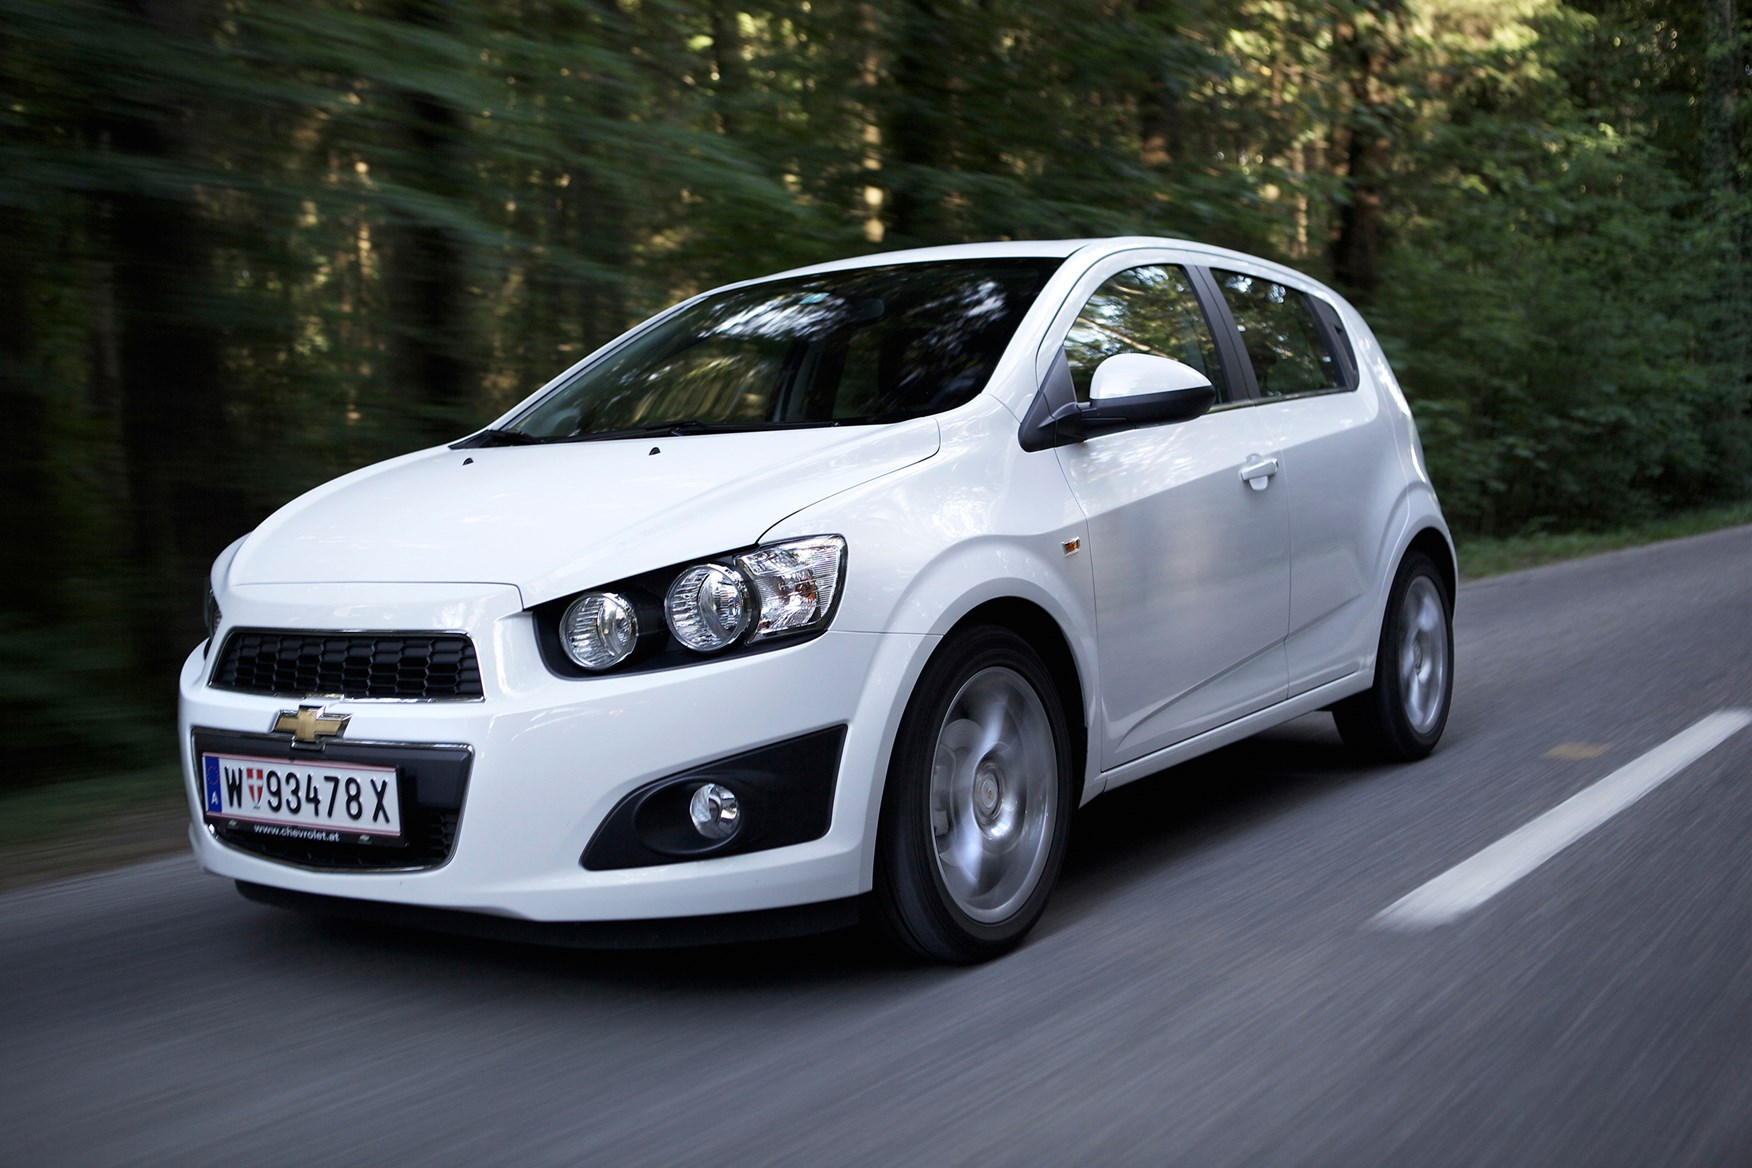 Chevrolet Aveo Hatchback Review (2011 - 2015) | Parkers